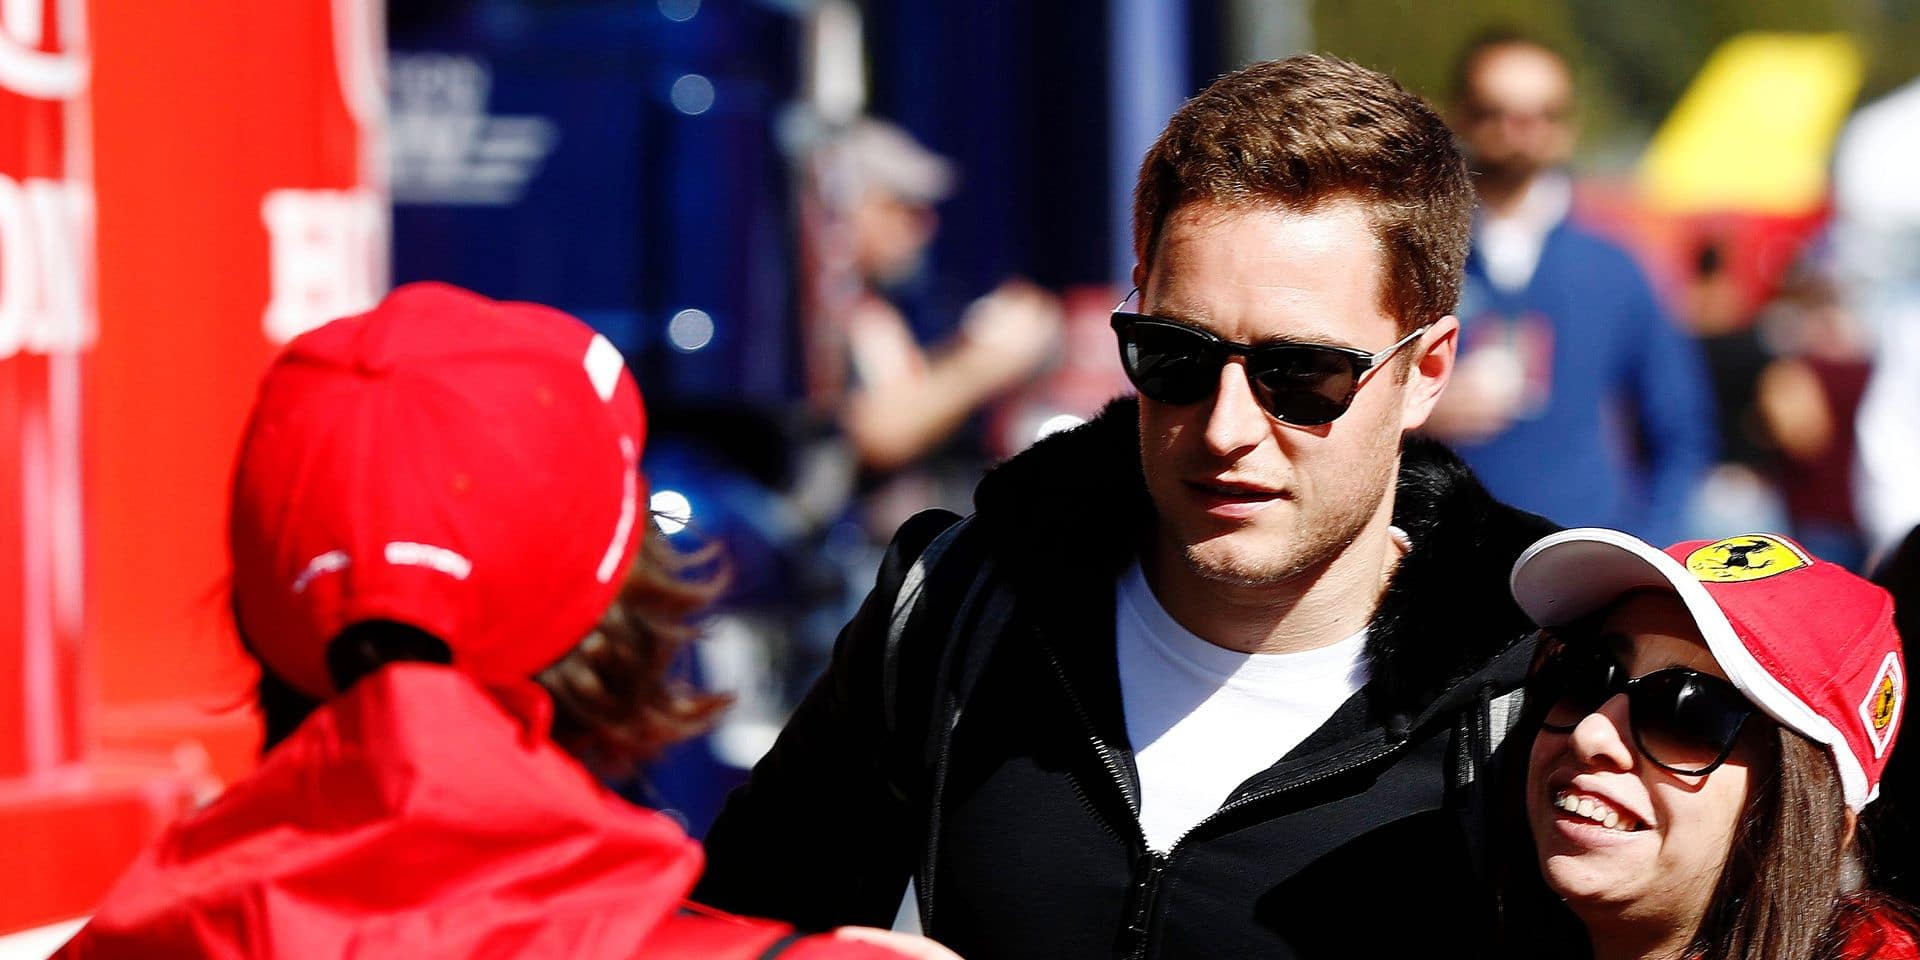 Stoffel Vandoorne poses for a photo with a fan FORMULE 1 : Pre saison 2019 - Essais - Barcelone - 26/02/2019 © PanoramiC / PHOTO NEWS PICTURES NOT INCLUDED IN THE CONTRACTS ! only BELGIUM !